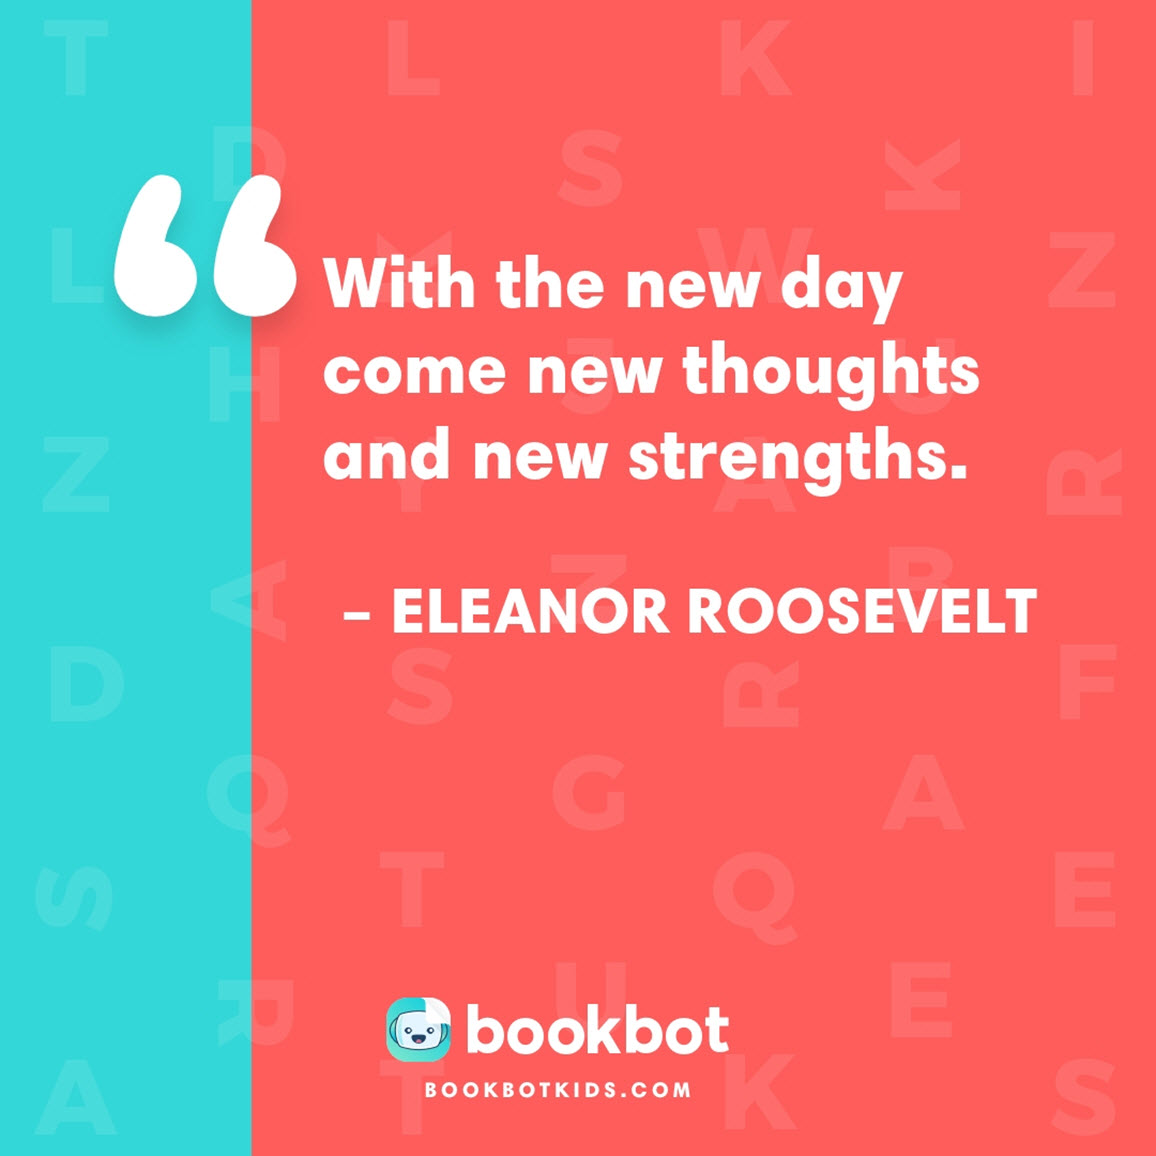 With the new day come new thoughts and new strengths. – Eleanor Roosevelt